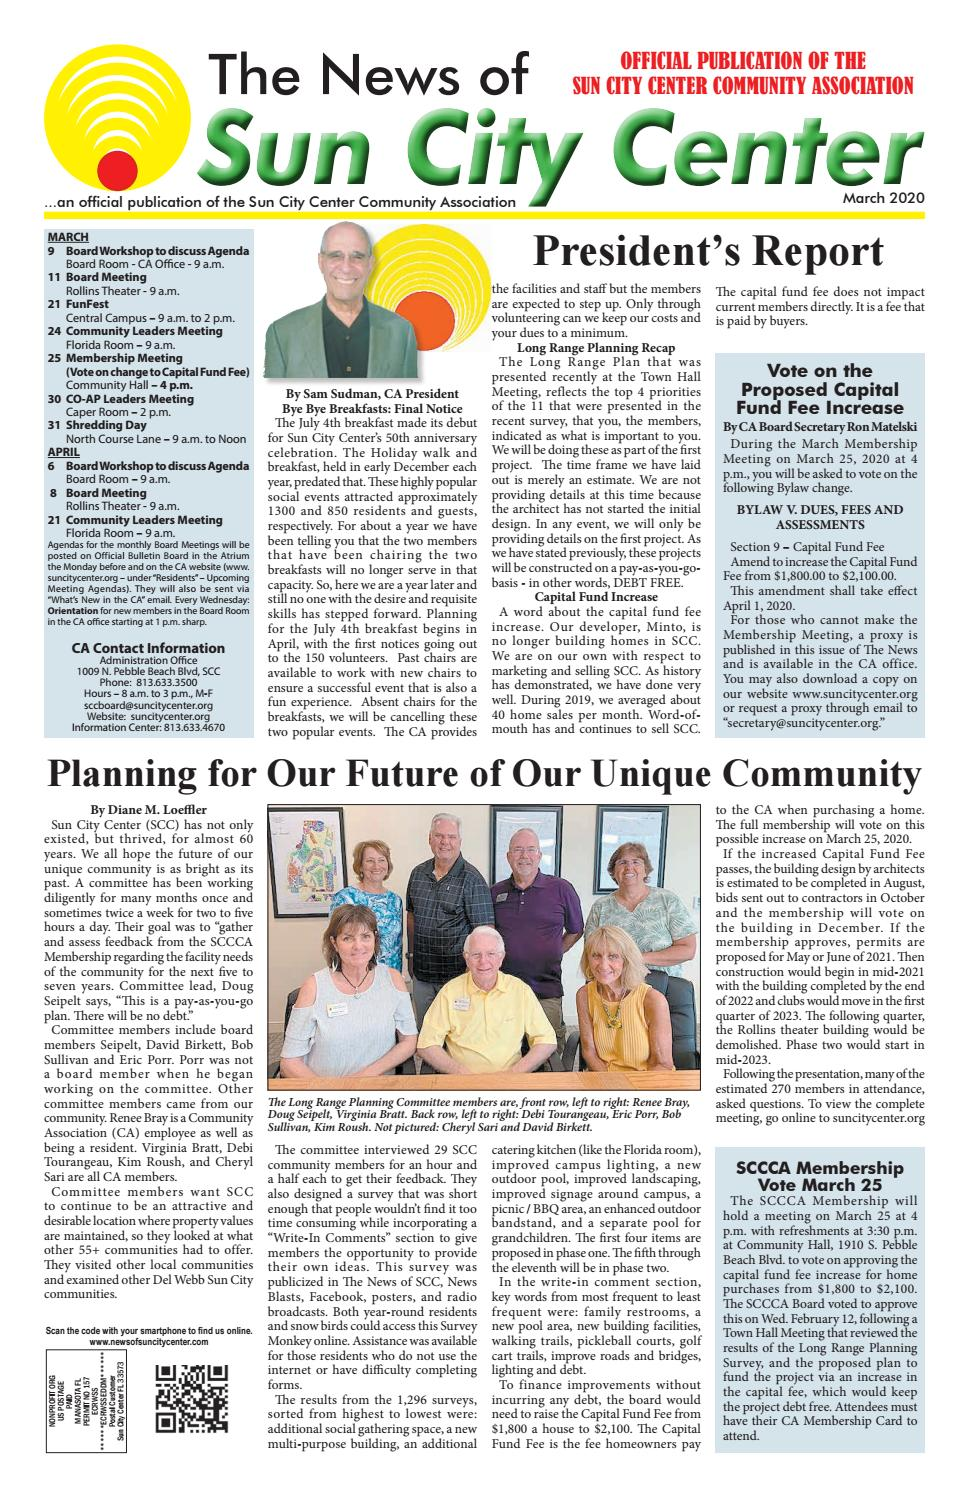 News Of Sun City Center March 2020 By The News Of Sun City Center